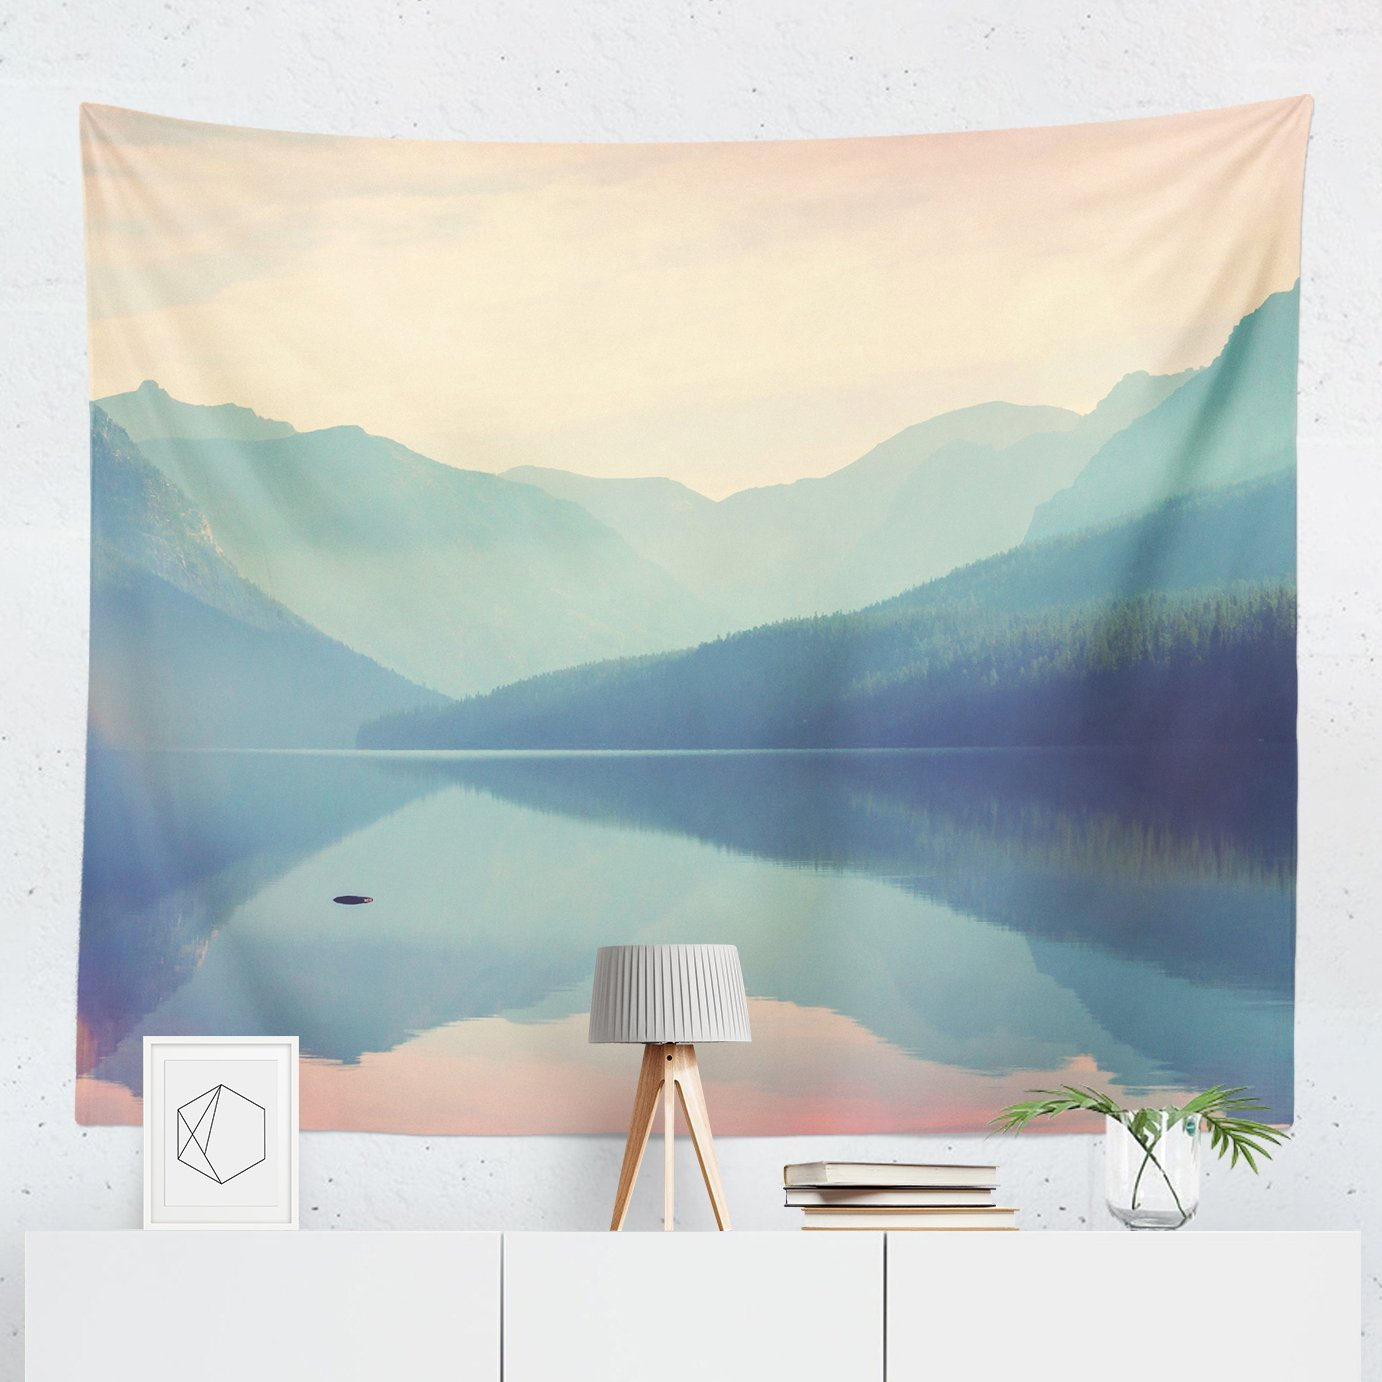 Lake Tapestry - Scenic Landscape Mountain Nature Wall Tapestries Hanging Décor Bedroom Dorm College Living Room Home Art Print Decoration Decorative - Printed in the USA - Small Medium Large Sizes